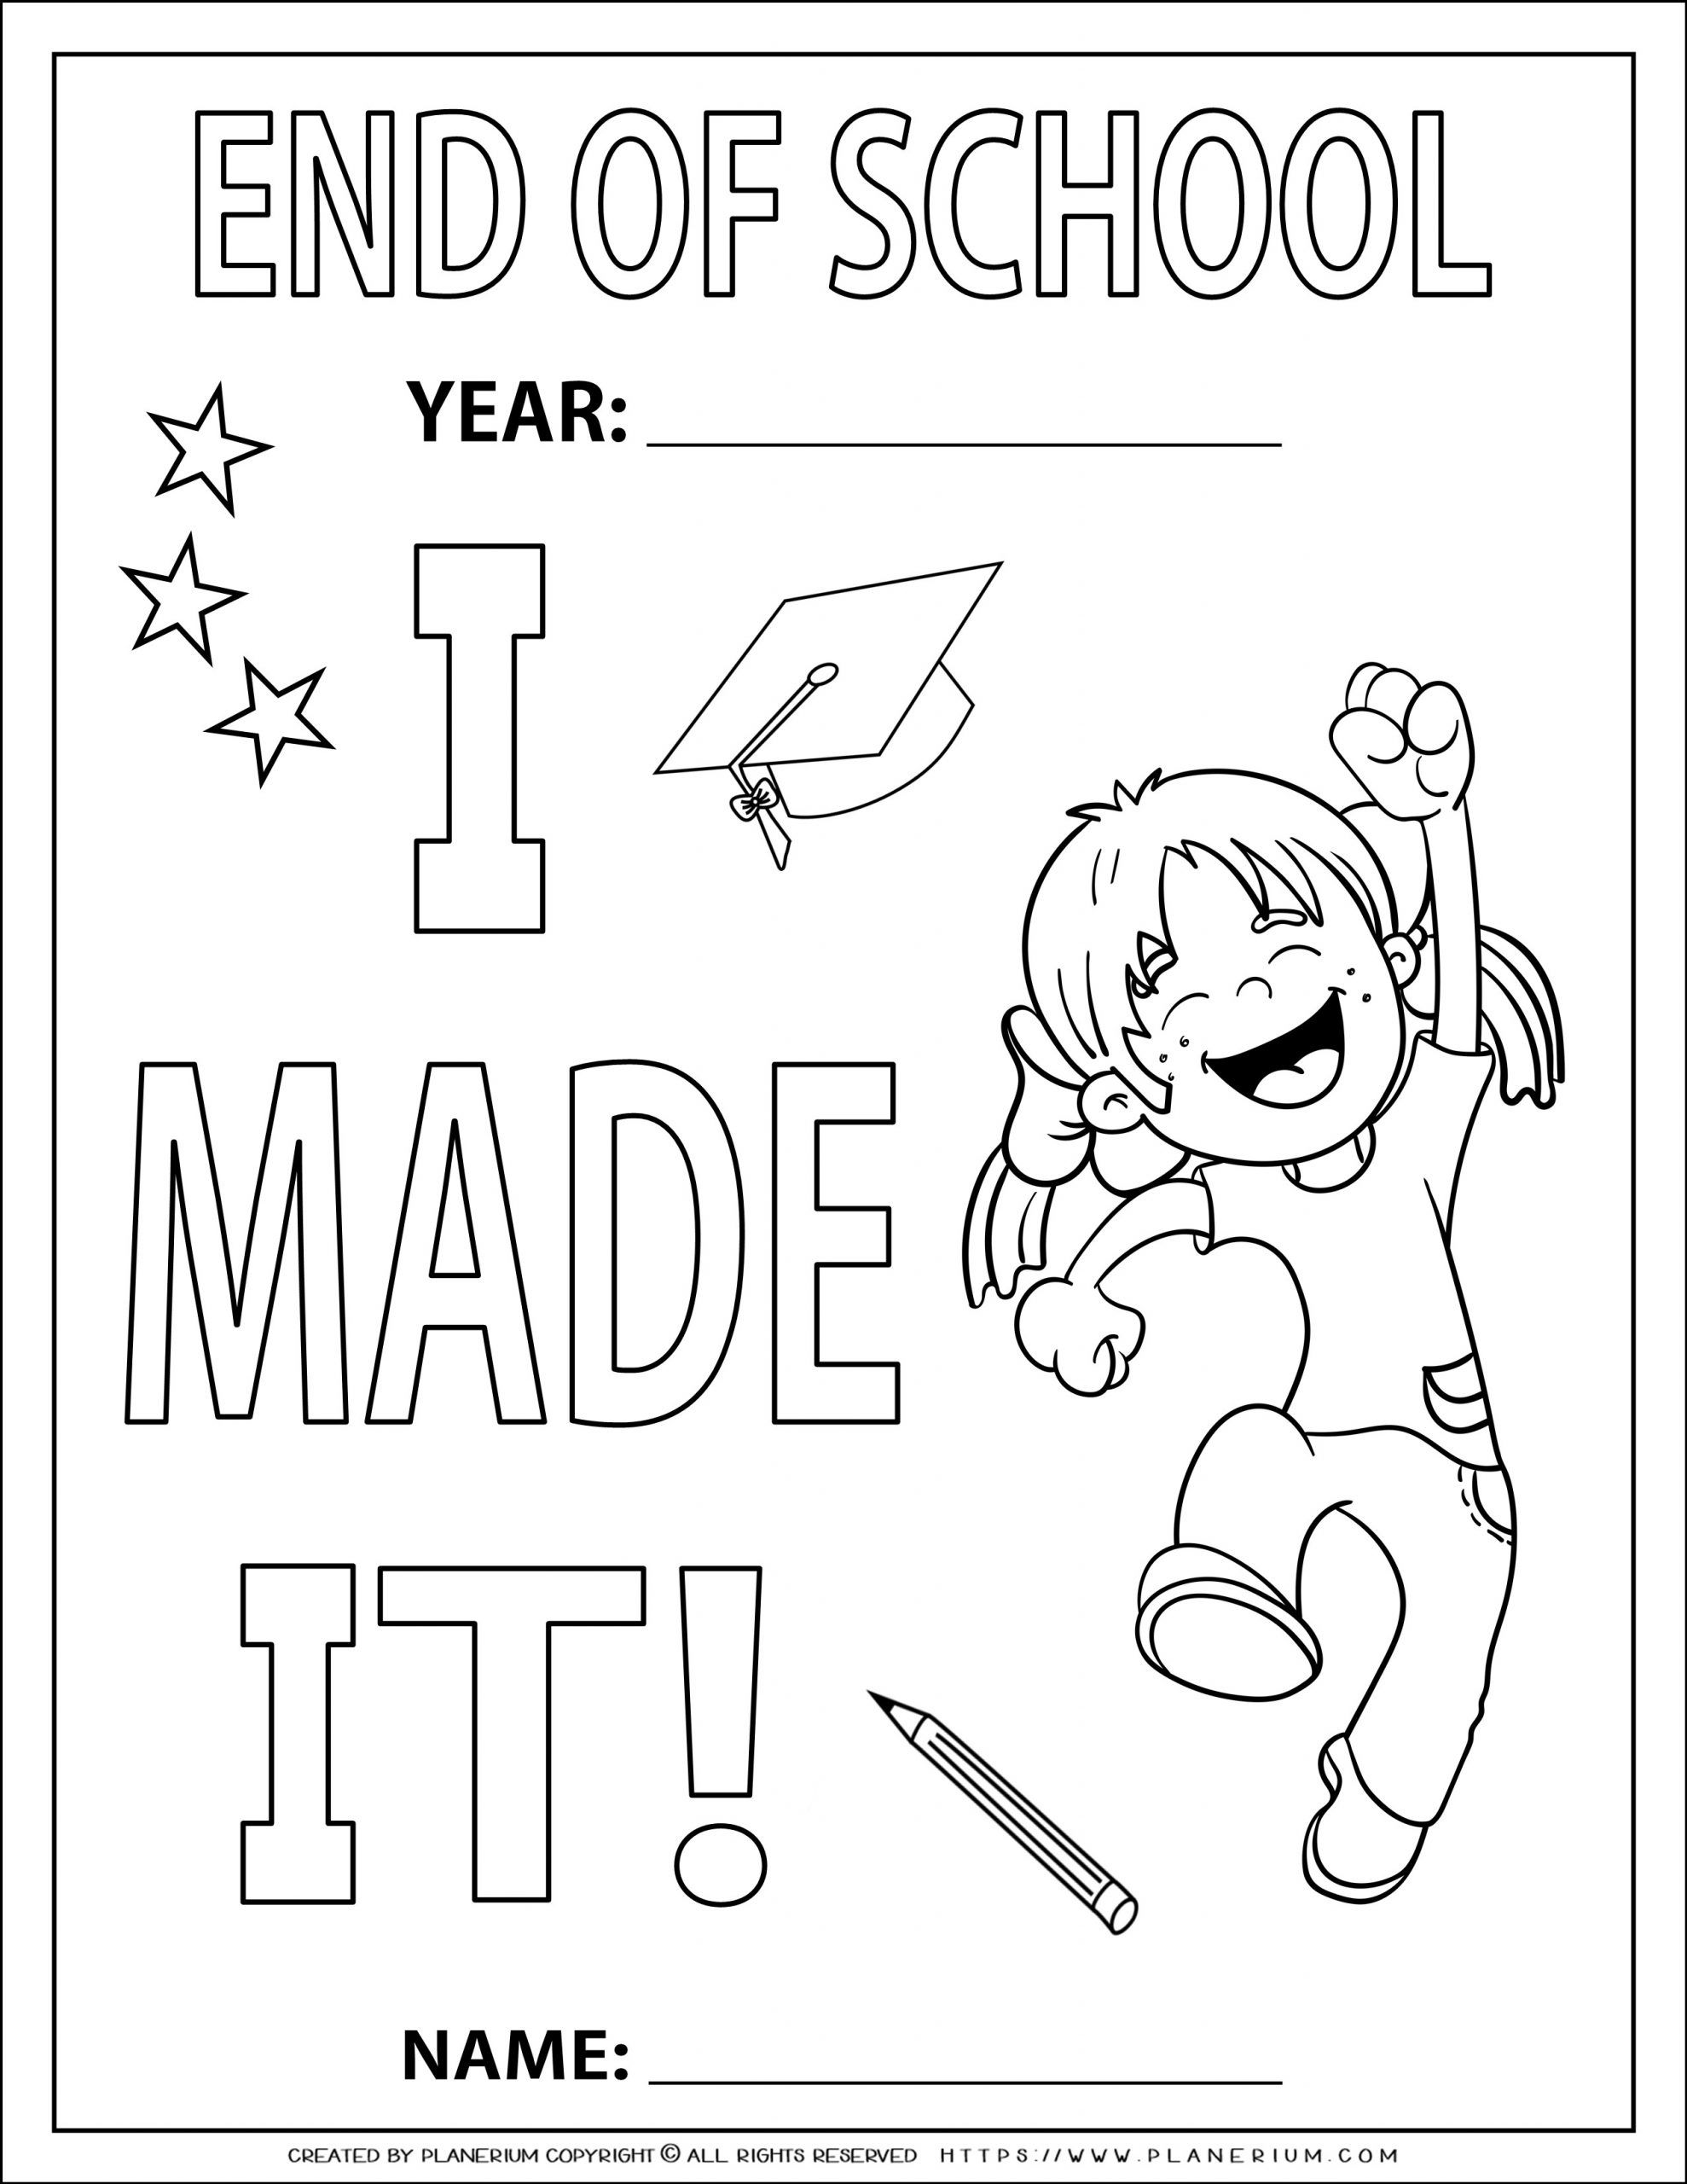 End of Year - Coloring Page - I Made It - Girl